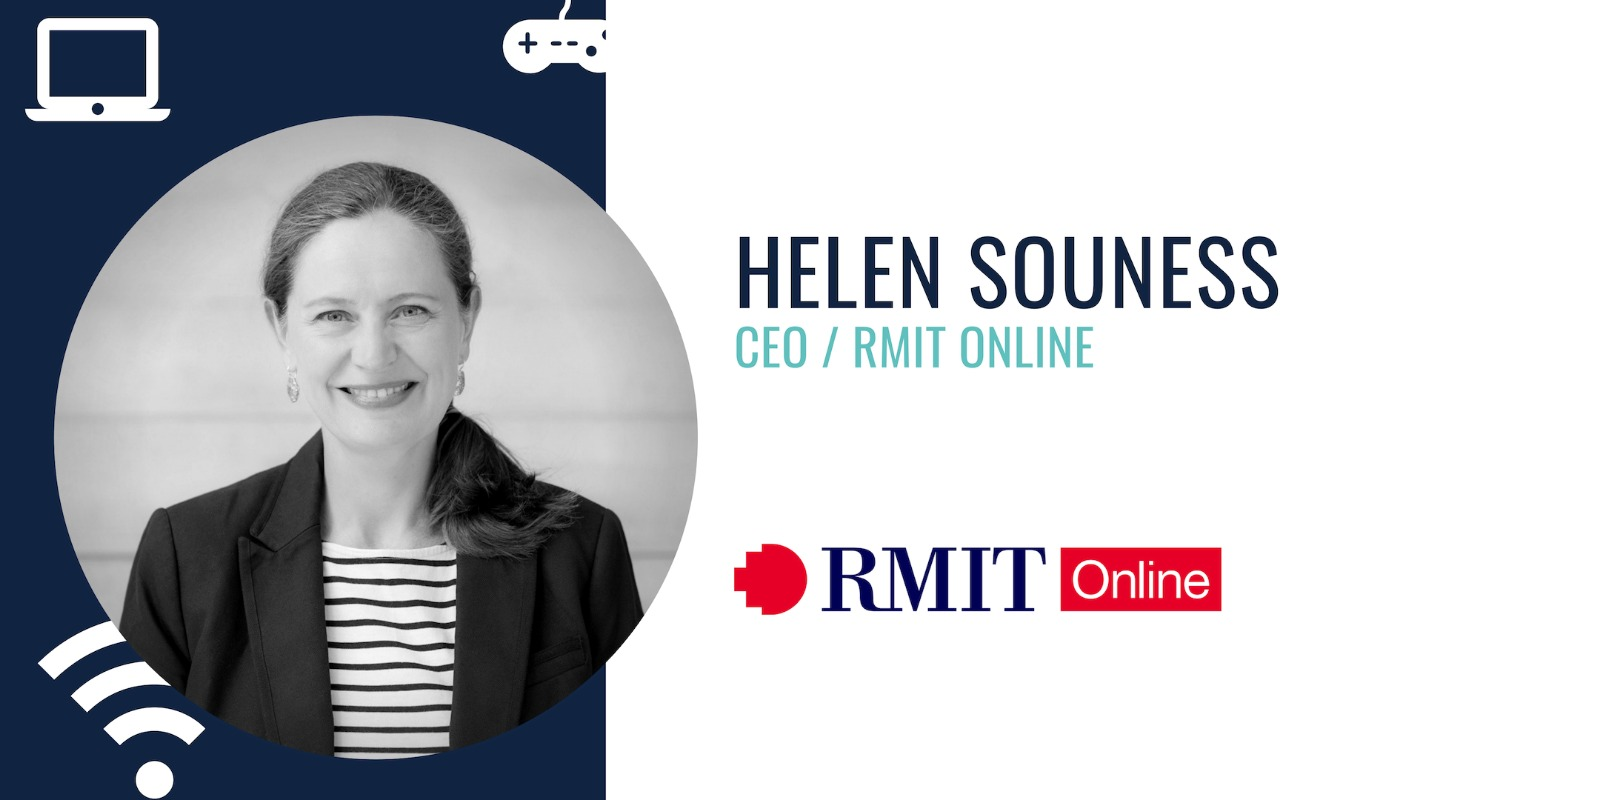 Helen Souness was appointed to this role in August 2017. As CEO of RMIT Online, she leads the business to support a growing community of learners to successfully navigate the world of work by offering directly relevant, accessible and flexible educational opportunities online. She is a senior leader with a career that spans more than 25 years of commercial experience working in digital strategy, marketing and product across market-leading enterprises including Seek, Lonely Planet, Envato and Etsy. She has operated in General Manager, Managing Director and Board Director capacities for Envato, Canteen, Etsy and Sendle. Most recently as Managing Director of Asia for New York-based digital marketplace Etsy, Helen Souness led her team to triple the size of Etsy's Australian seller community and enter new Asian markets.